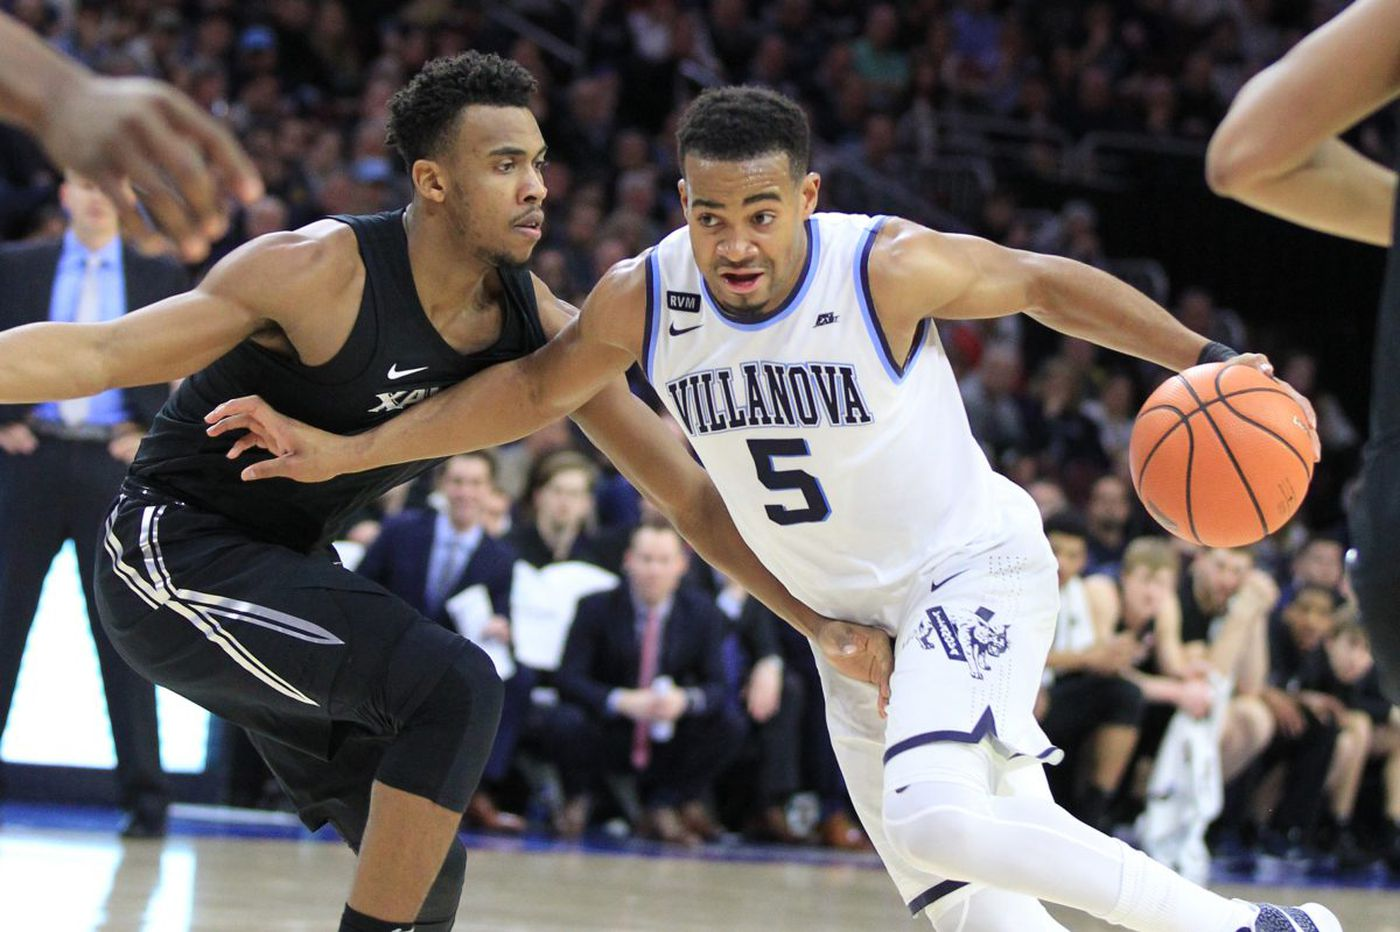 Villanova's Phil Booth out indefinitely with fractured bone in hand